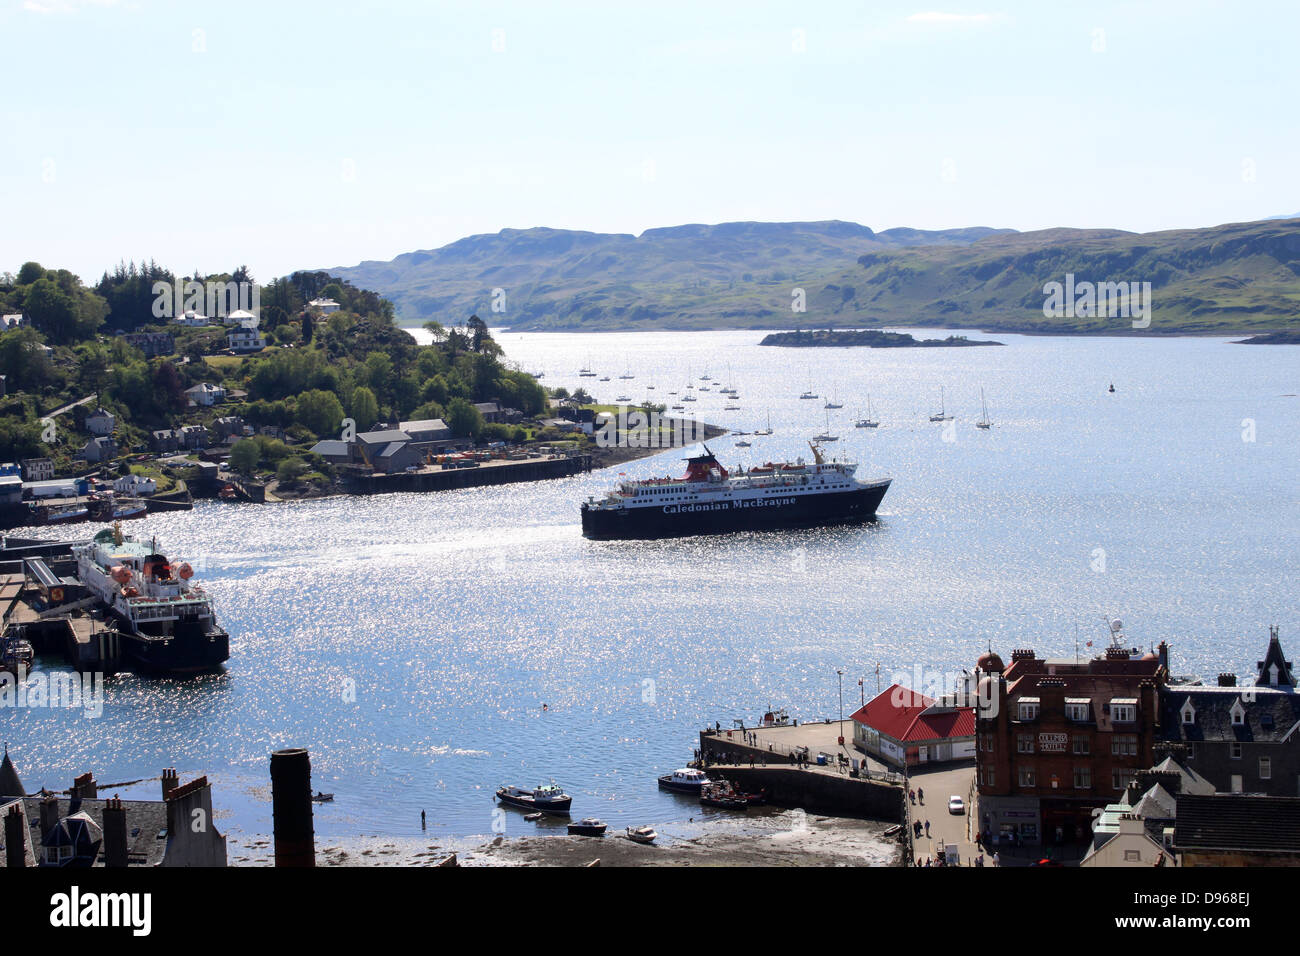 Isle of Mull (ferry operated by Caledonian MacBrayne) leaving Oban harbor with a sailing to Craignure on the Isle - Stock Image